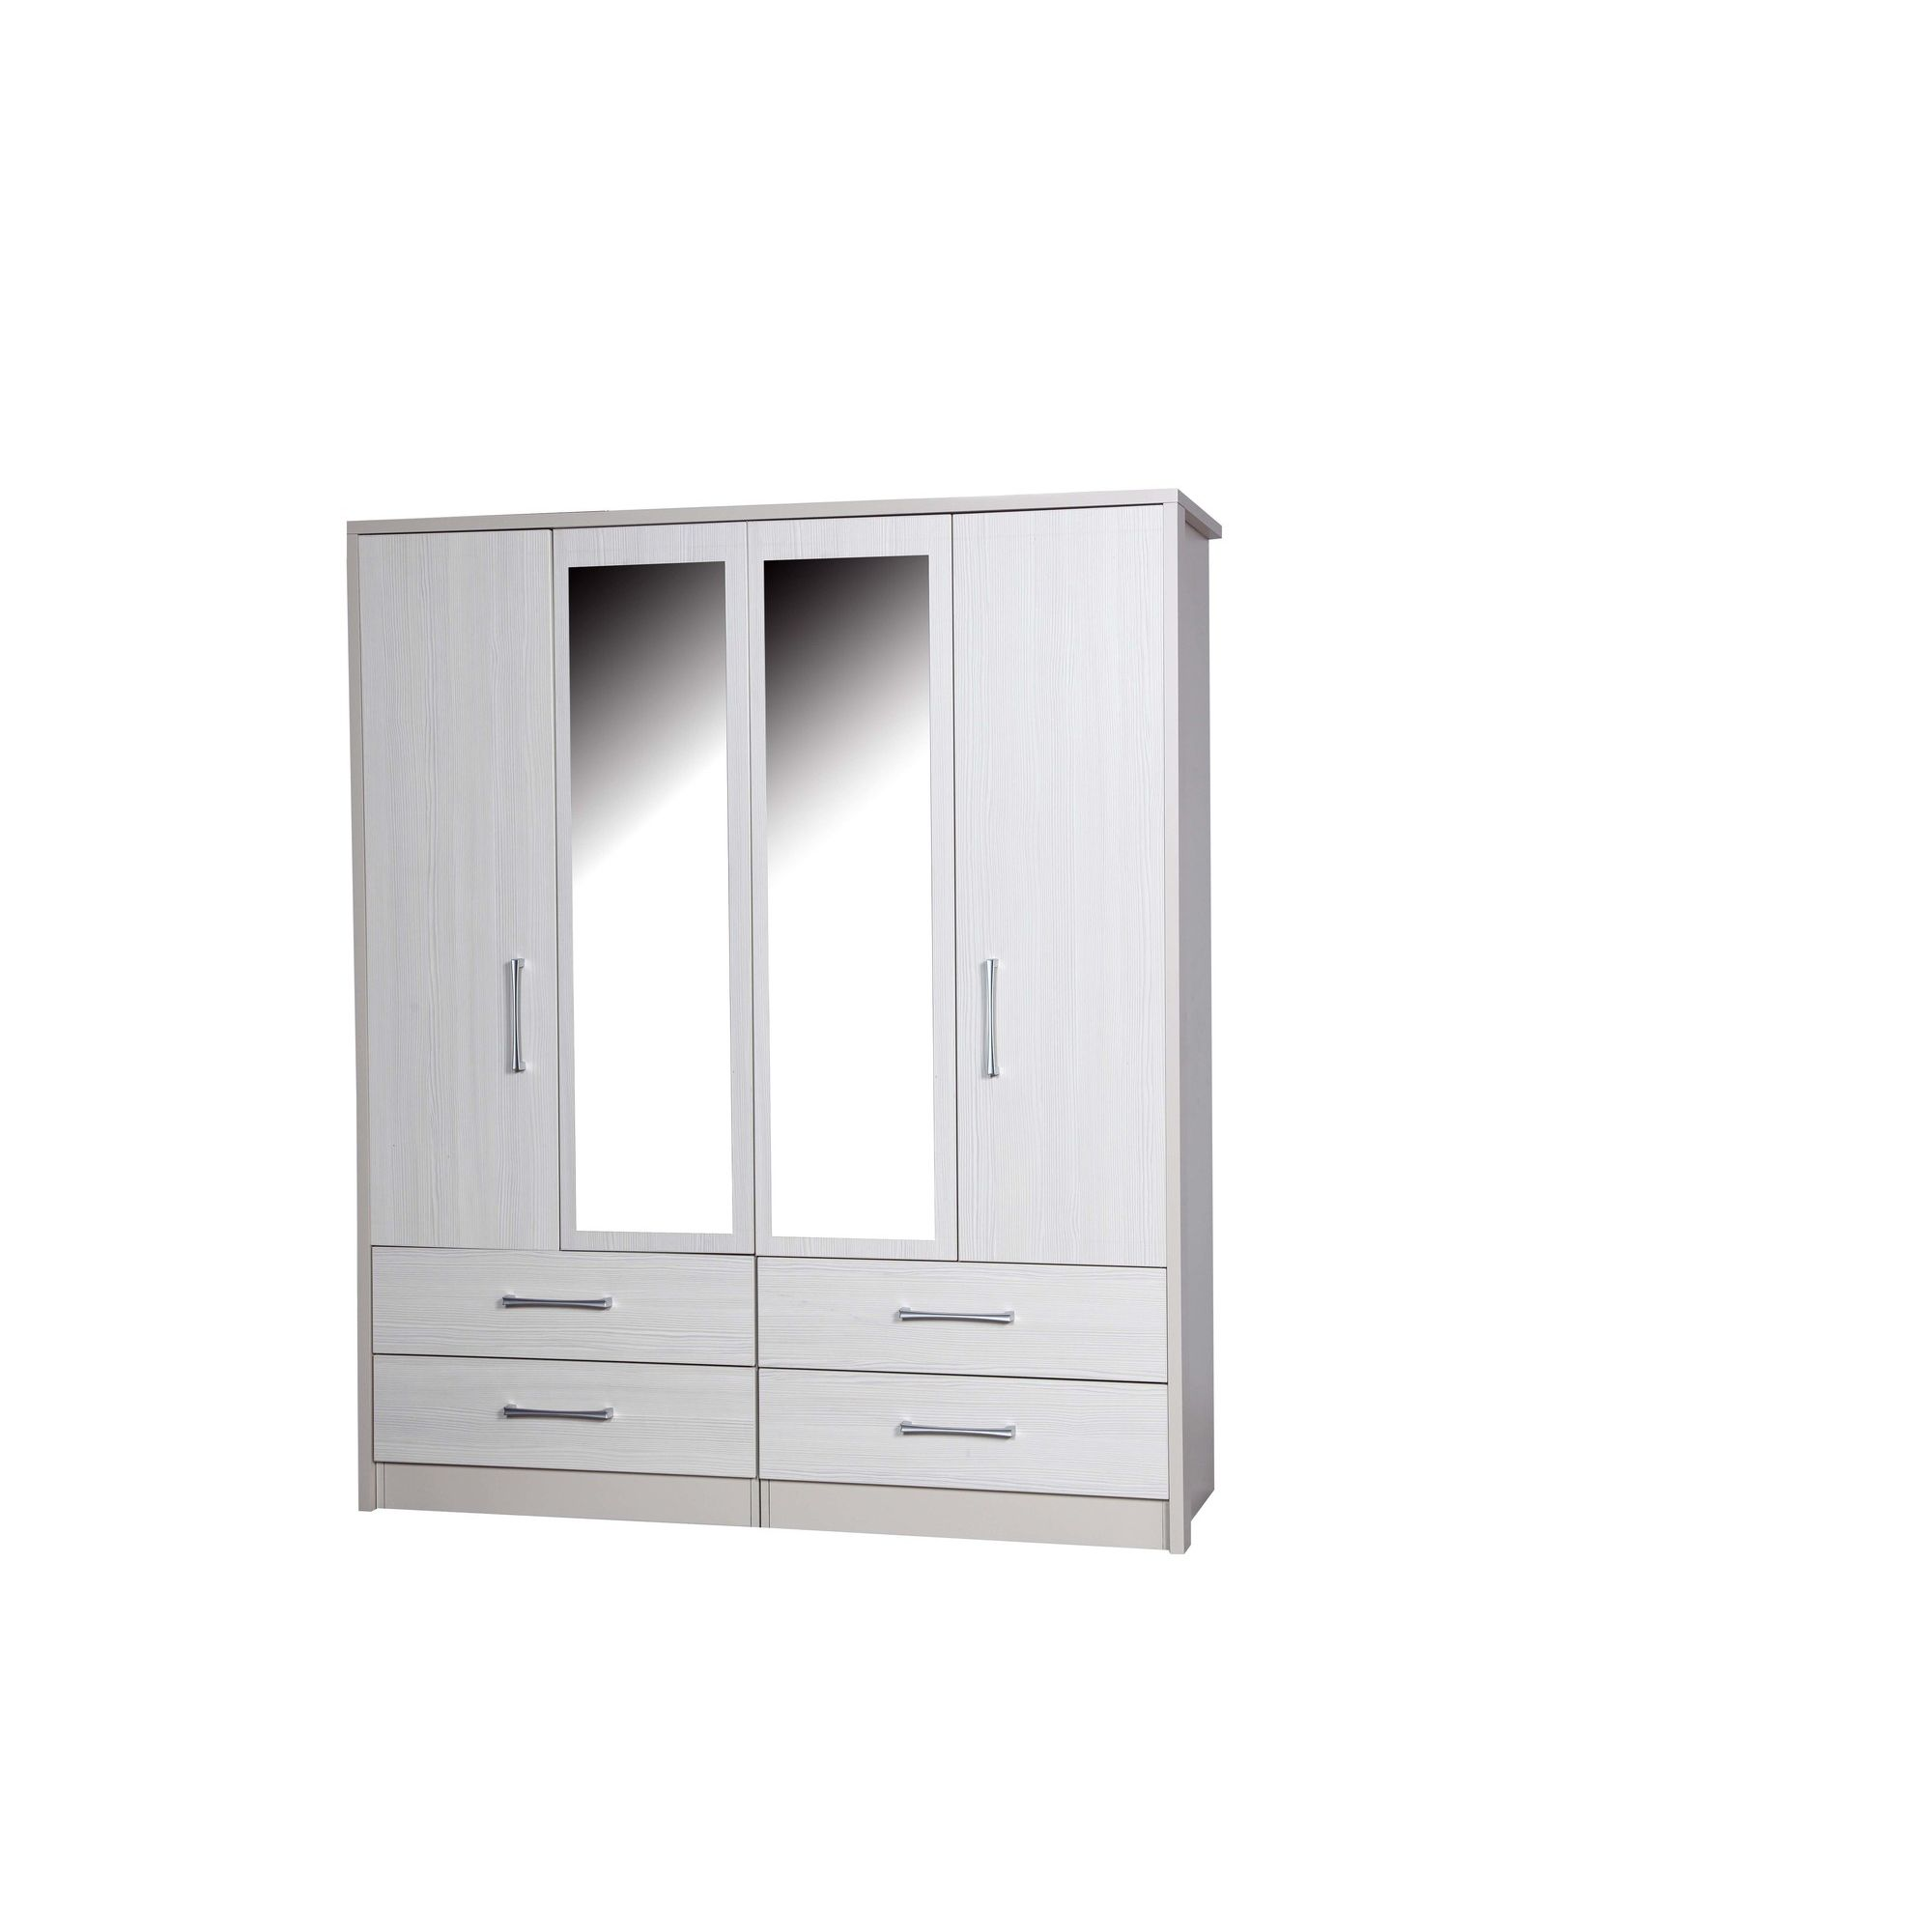 Alto Furniture Avola 4 Door Combi Wardrobe with 2 Mirrors - Cream Carcass With White Avola at Tescos Direct